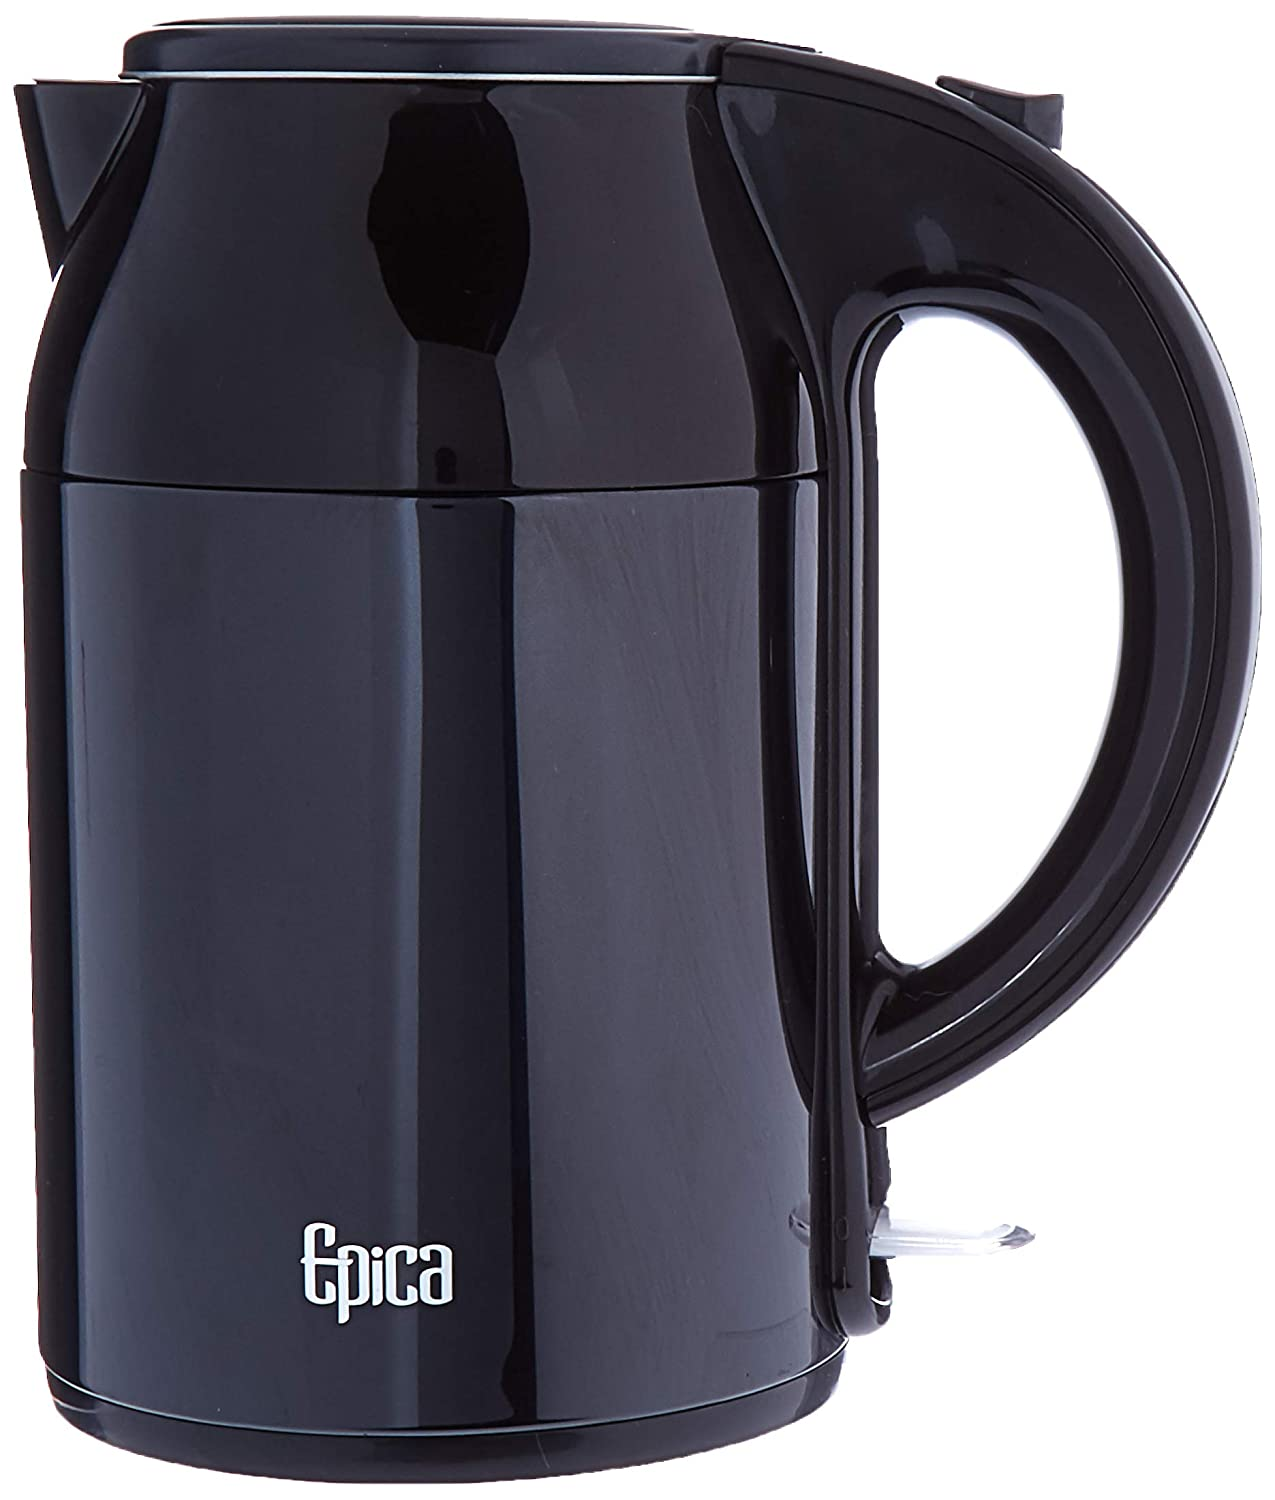 Epica SWF17S02U Black Cool Touch Kettle, 8.5 x 7.1 x 12.1 in in,